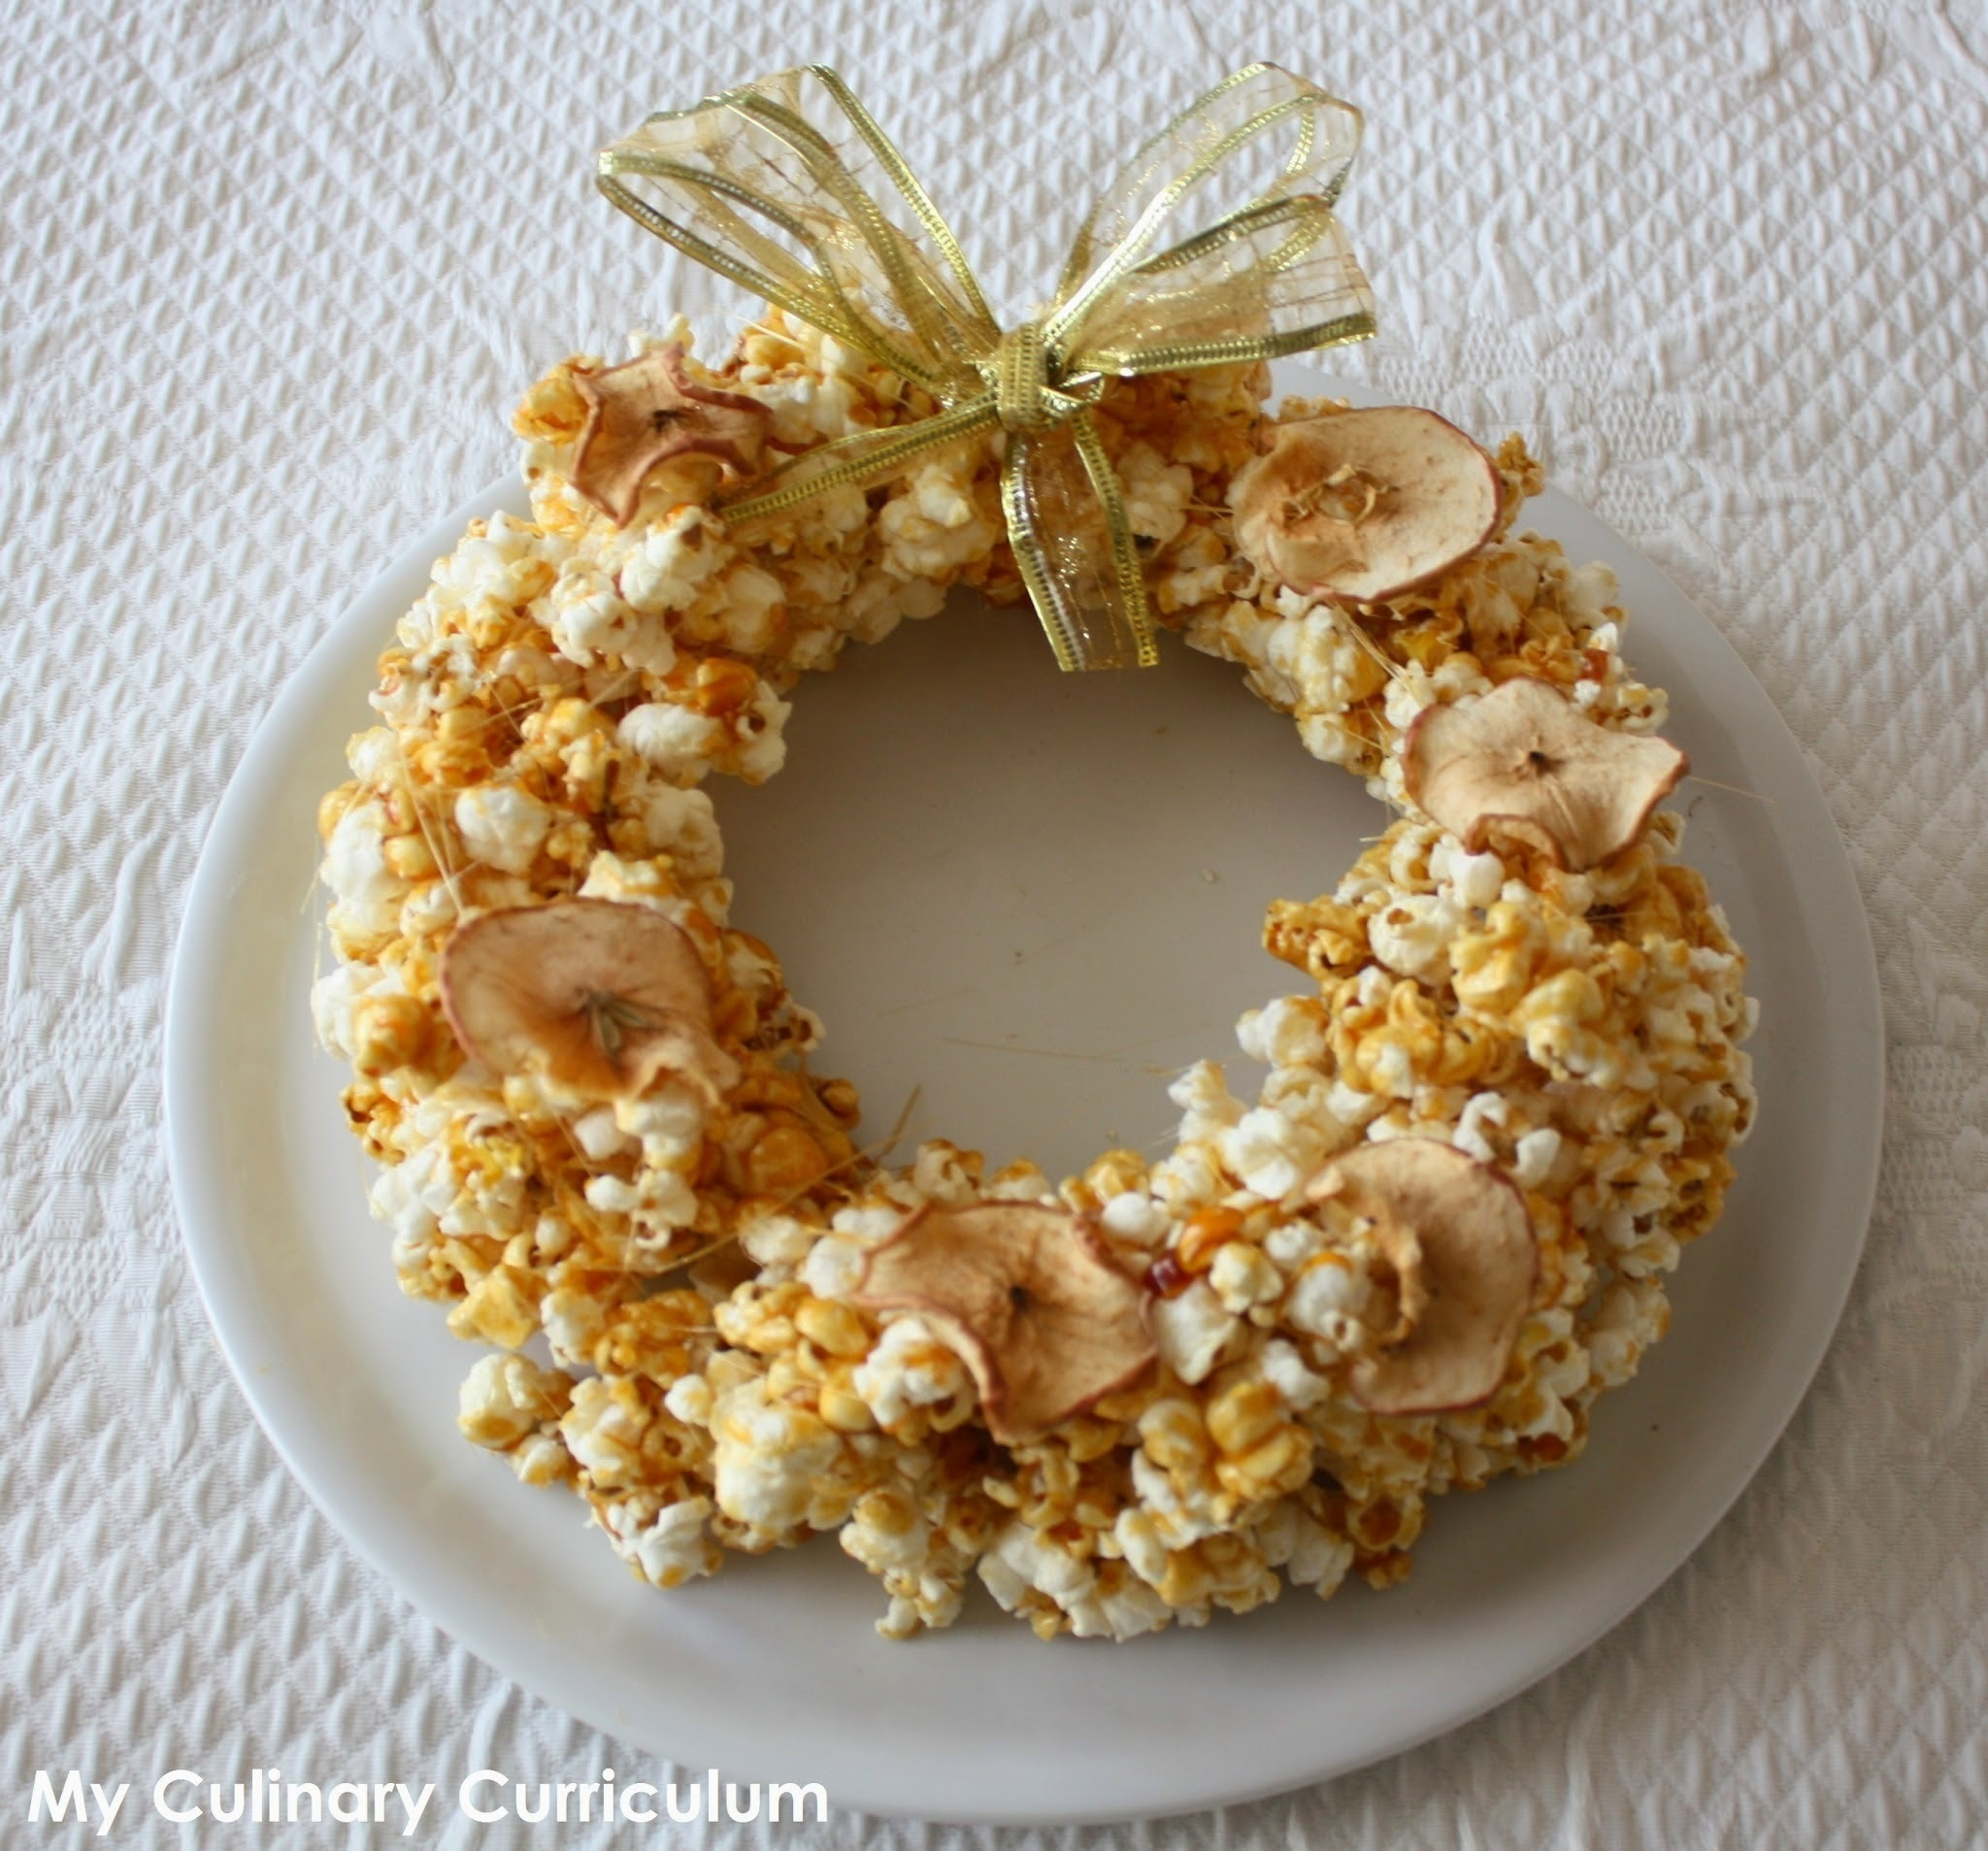 Couronne de Noël en pop-corn (Popcorn Christmas crown)